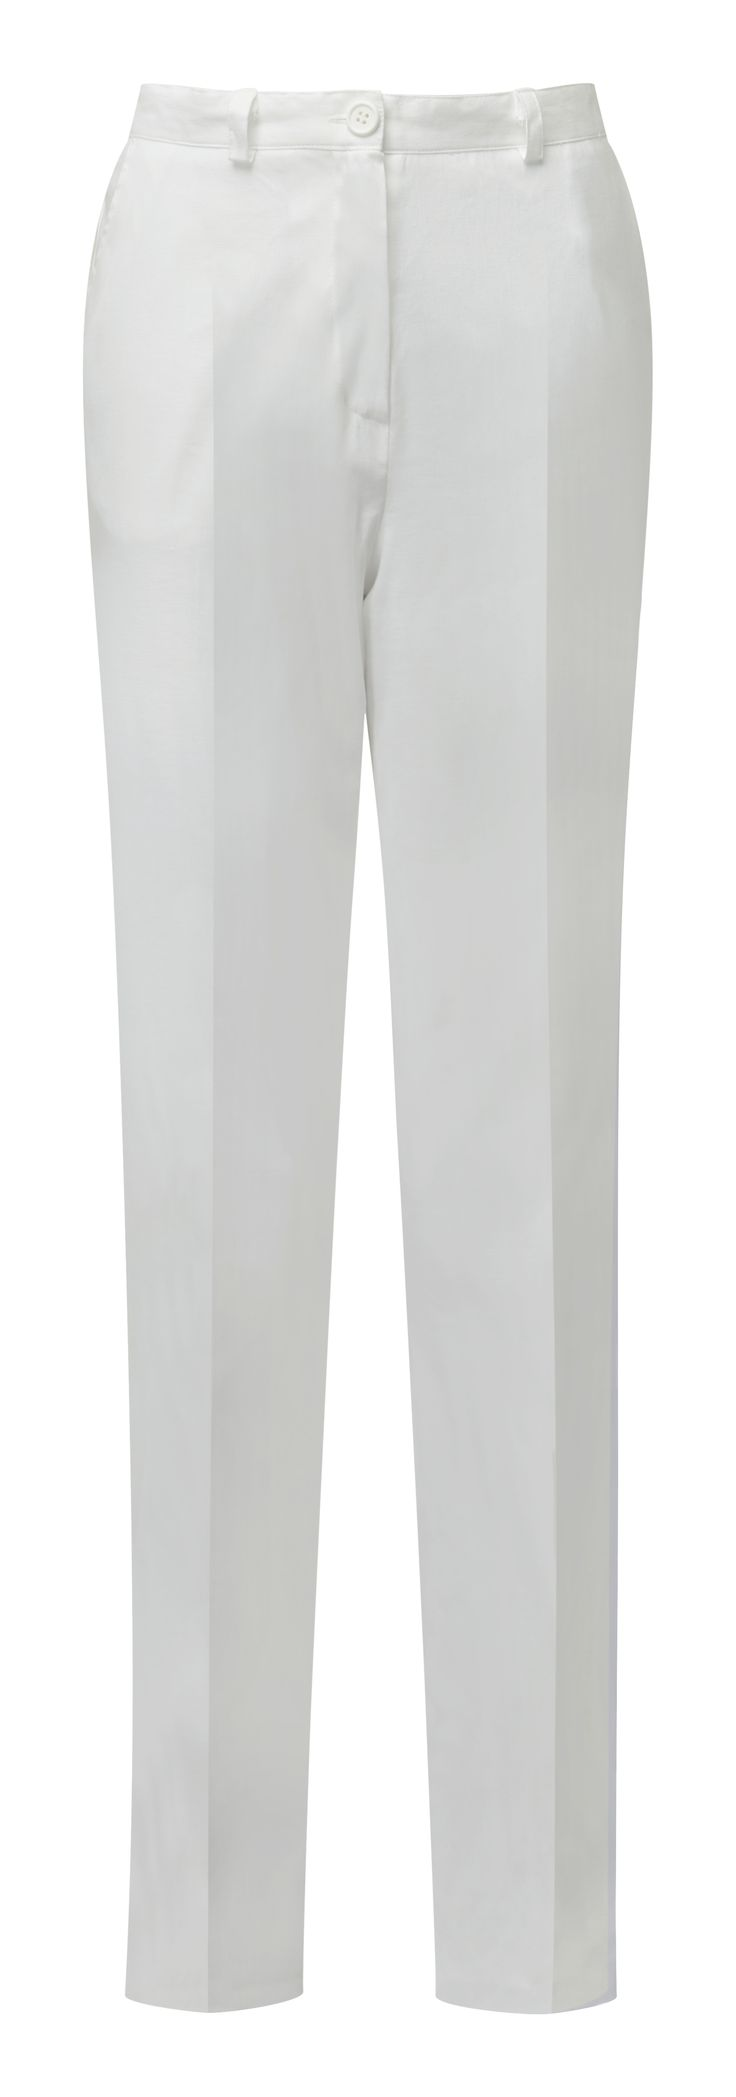 Linen Mix Trousers - Ref :  K170X  Stylish linen blend trousers for dressed up elegance. With a hint of elastication at the waist and crease front detail, they feel and look great. A touch of stretch in the fabric ensures they look smart all day long.